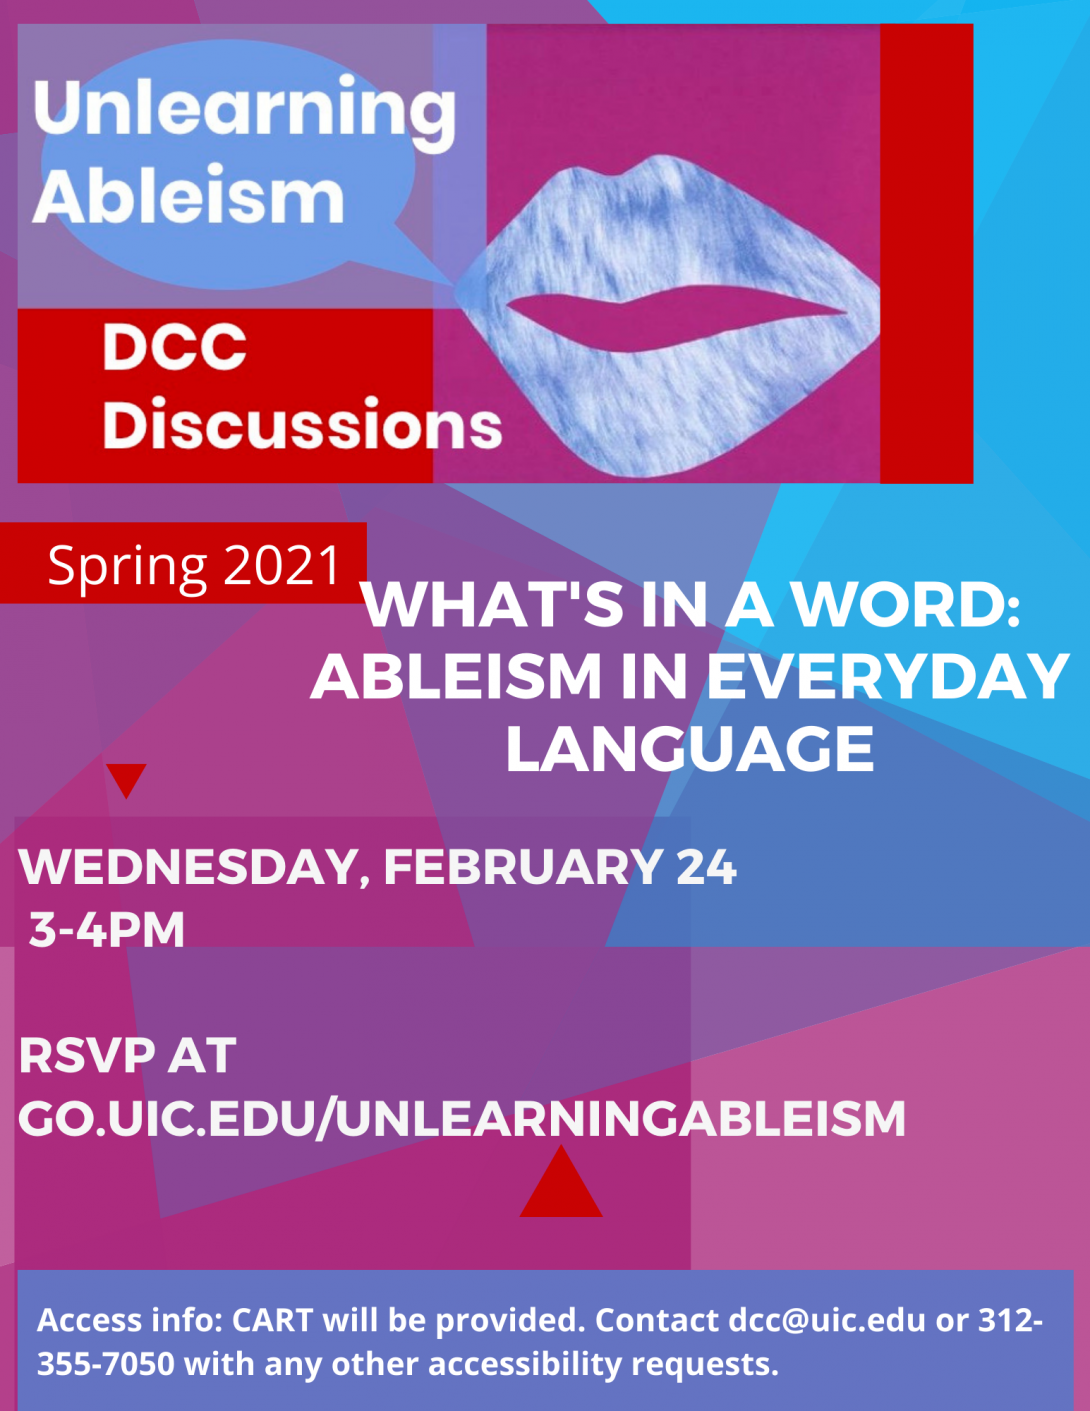 Unlearning Ableism Event Flyer